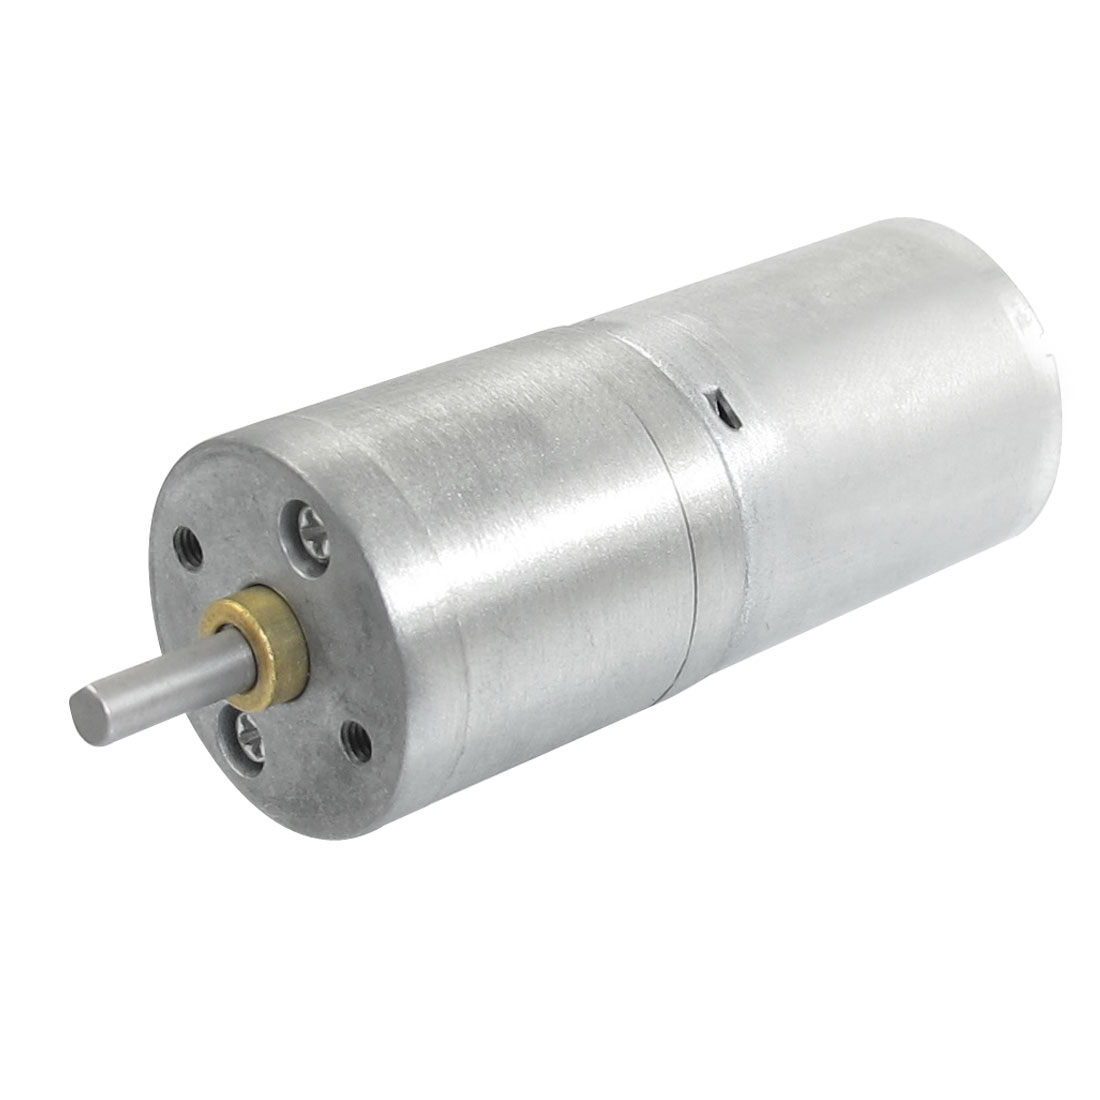 4mm Shaft 26RPM Output Speed 6V 0.06A Speed Reduce DC Geared Motor